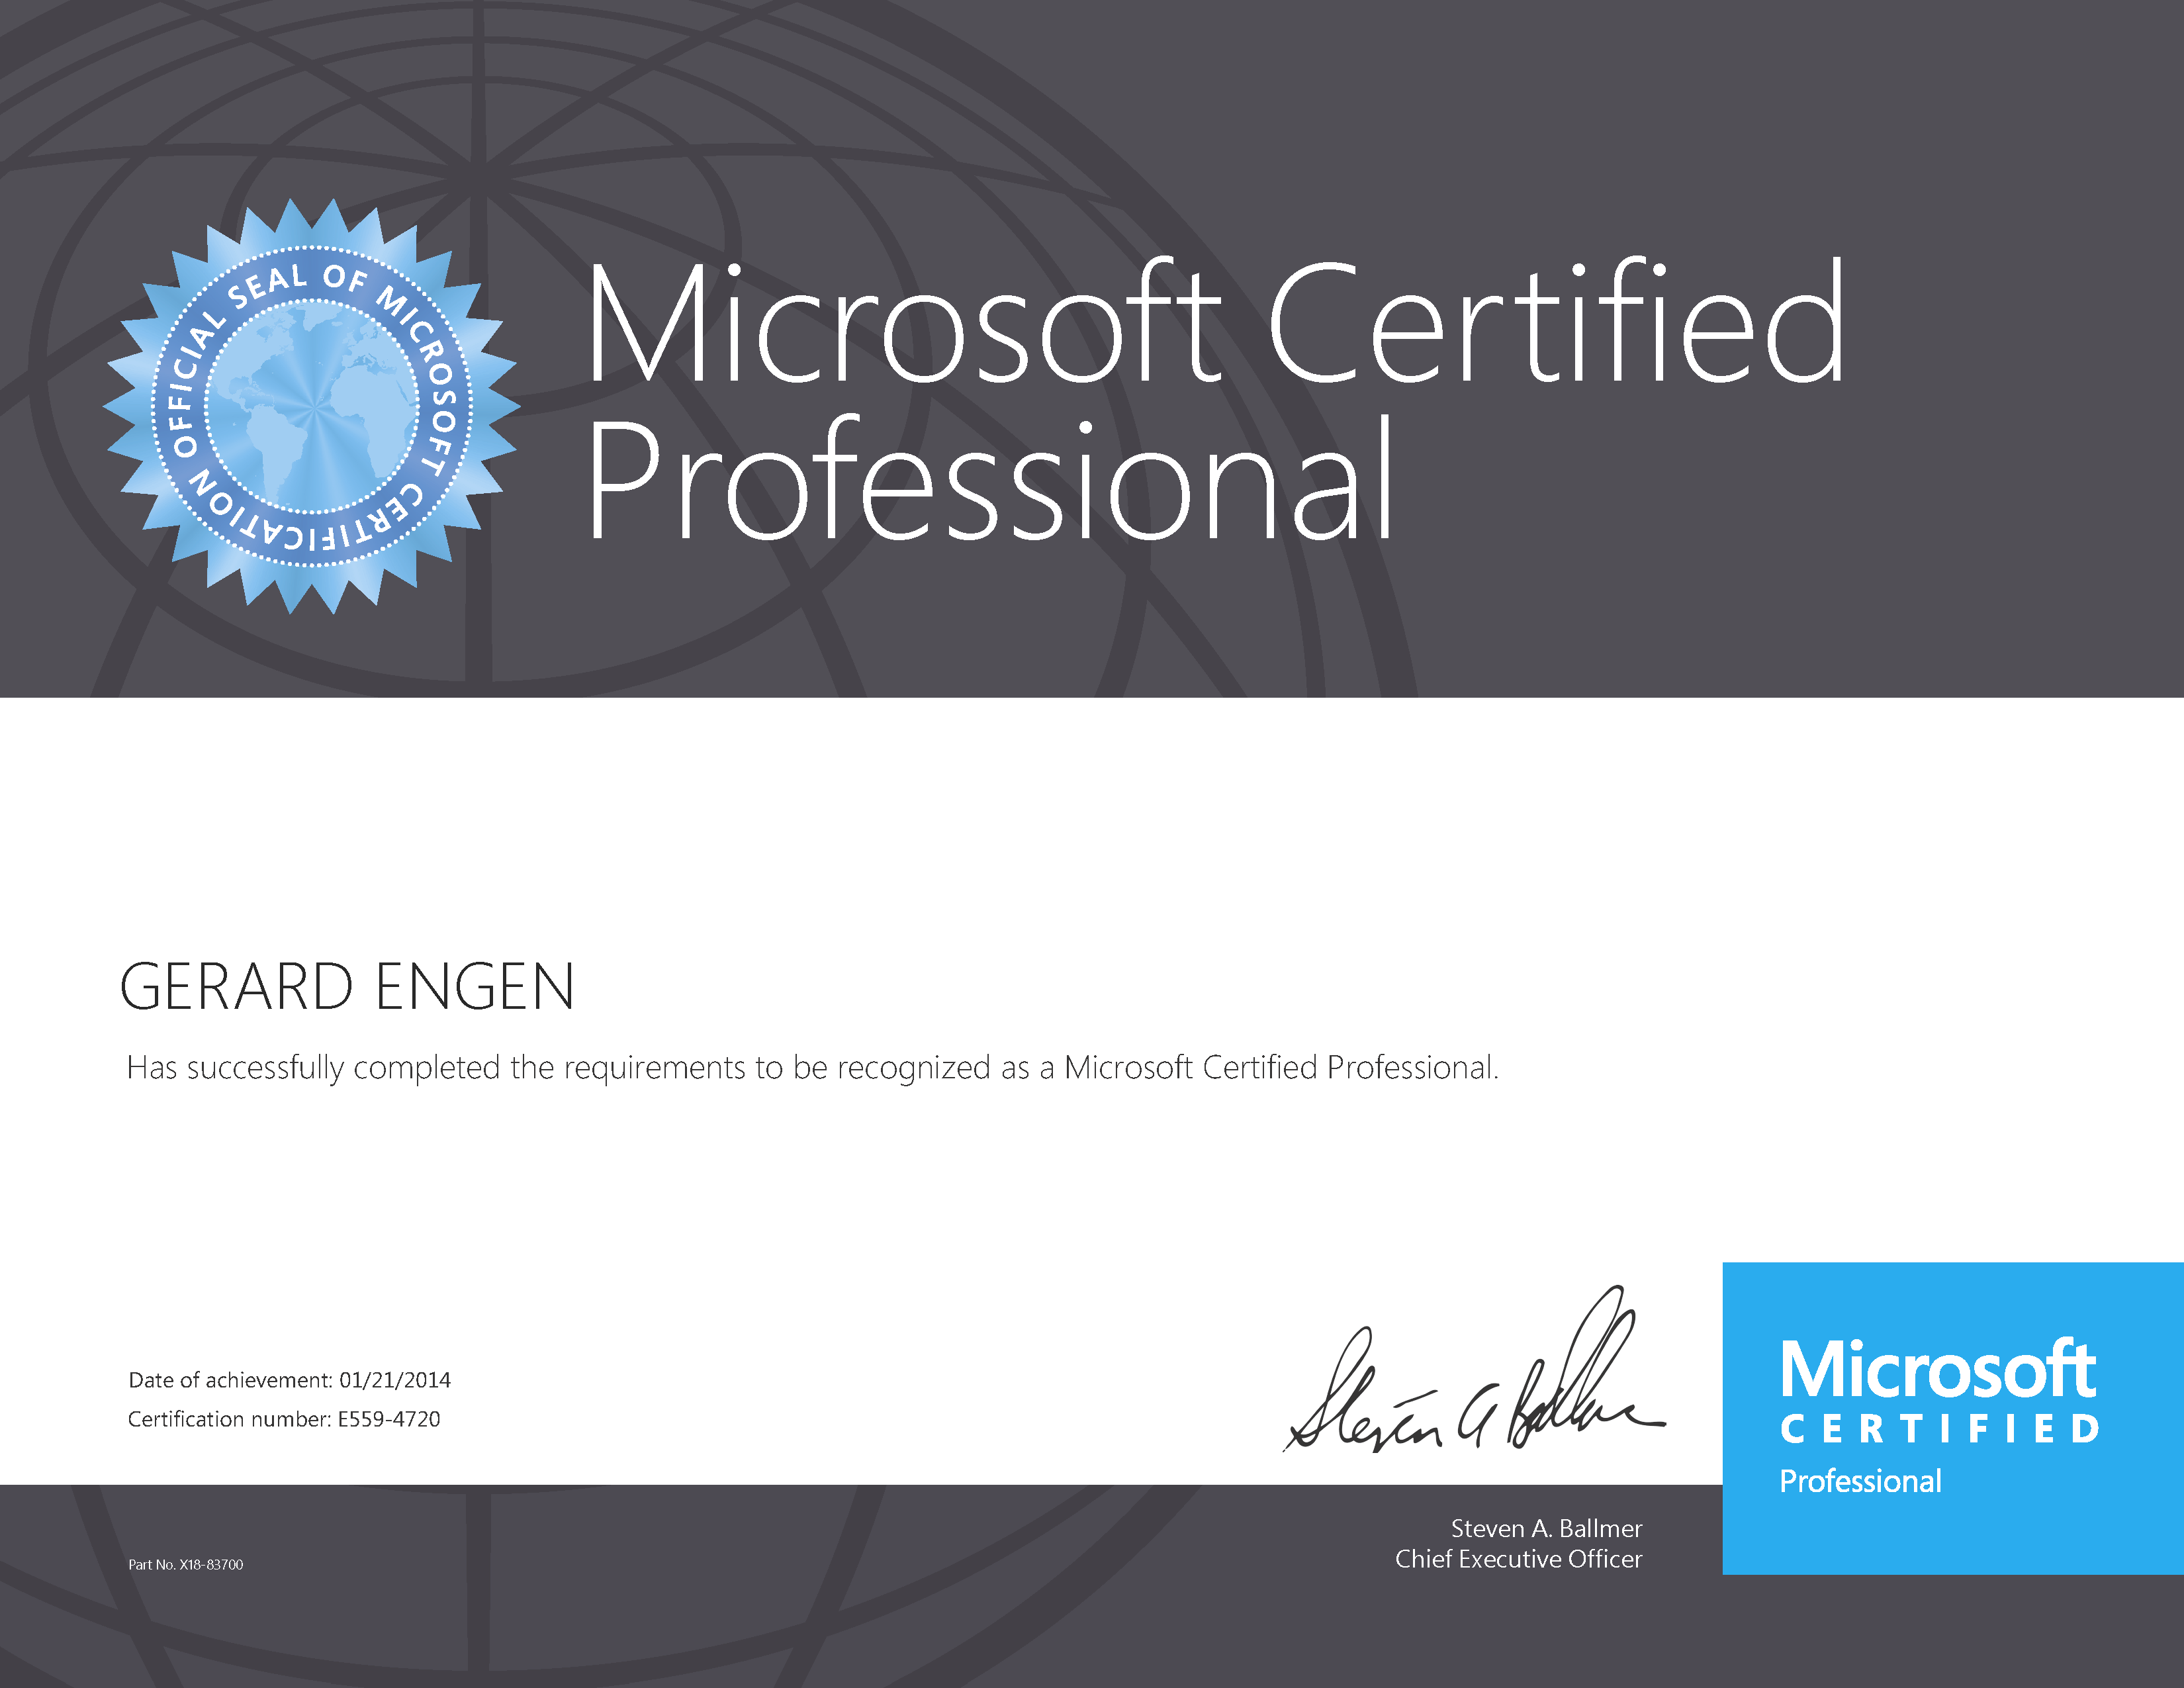 microsoft-certified-professional